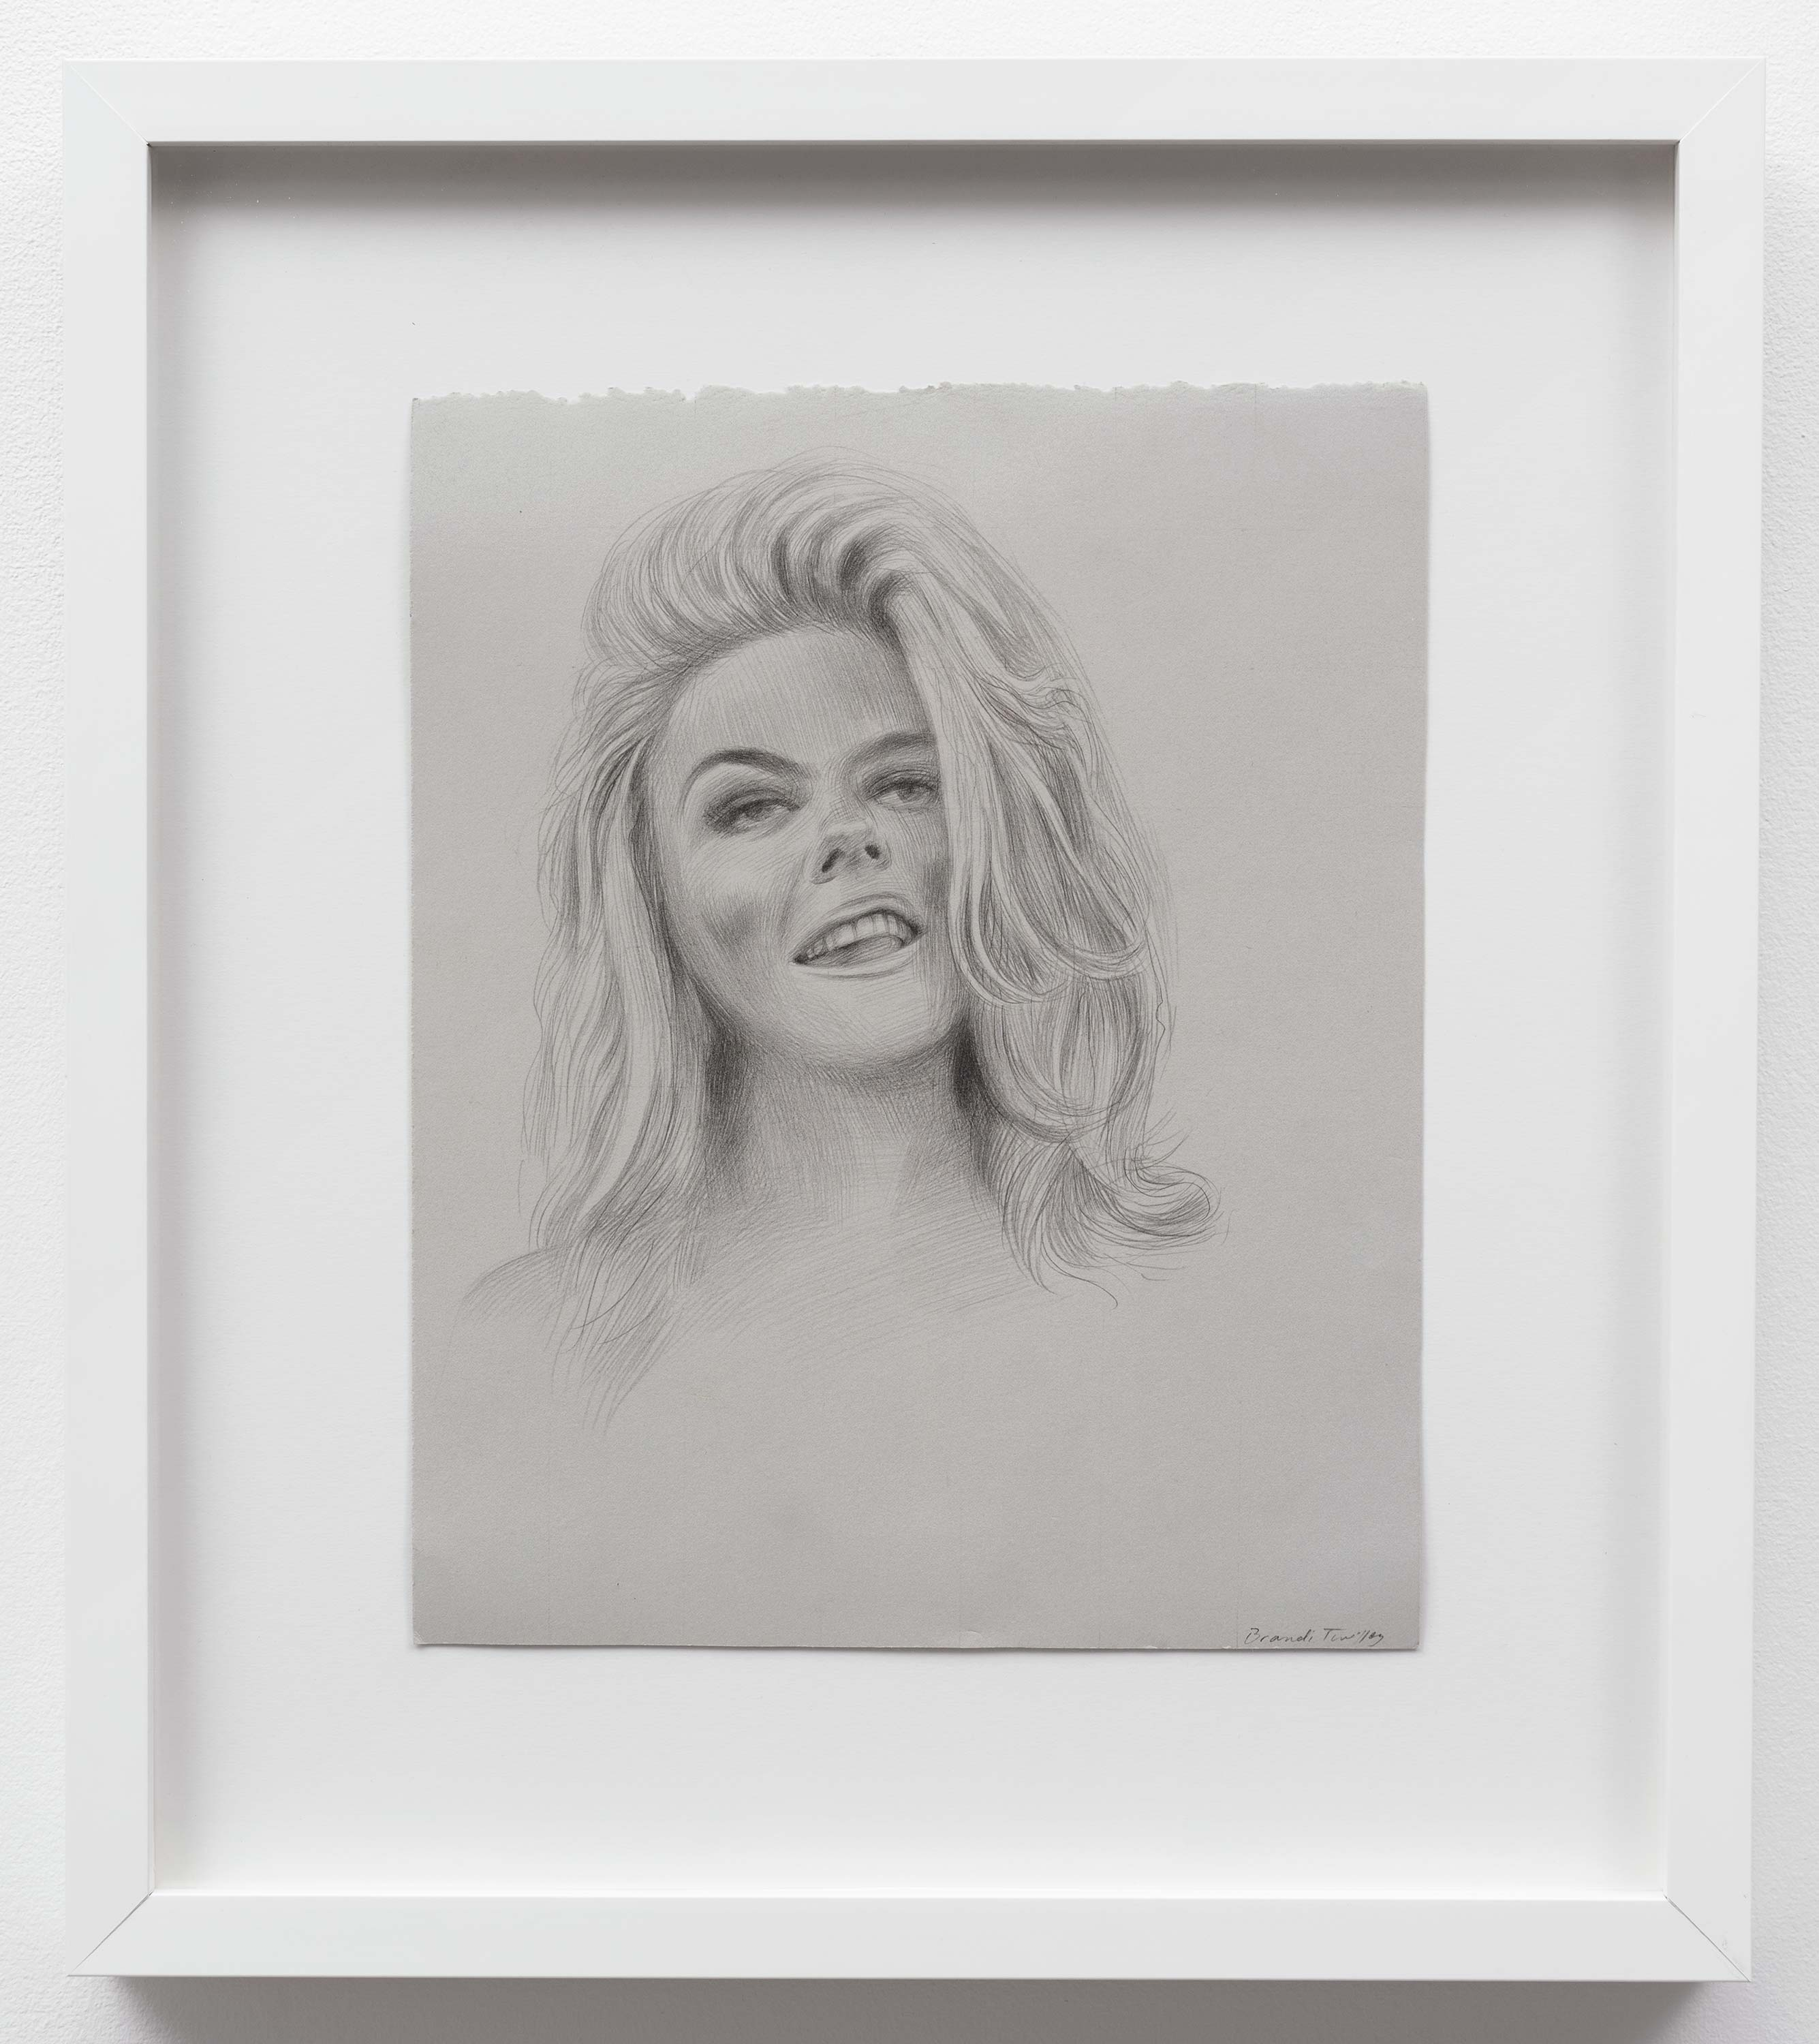 Brandi Twilley<br>Blond Hair<br>2014<br>Graphite on gray paper<br>9 x 11.5 inches (23 x 29 cm)